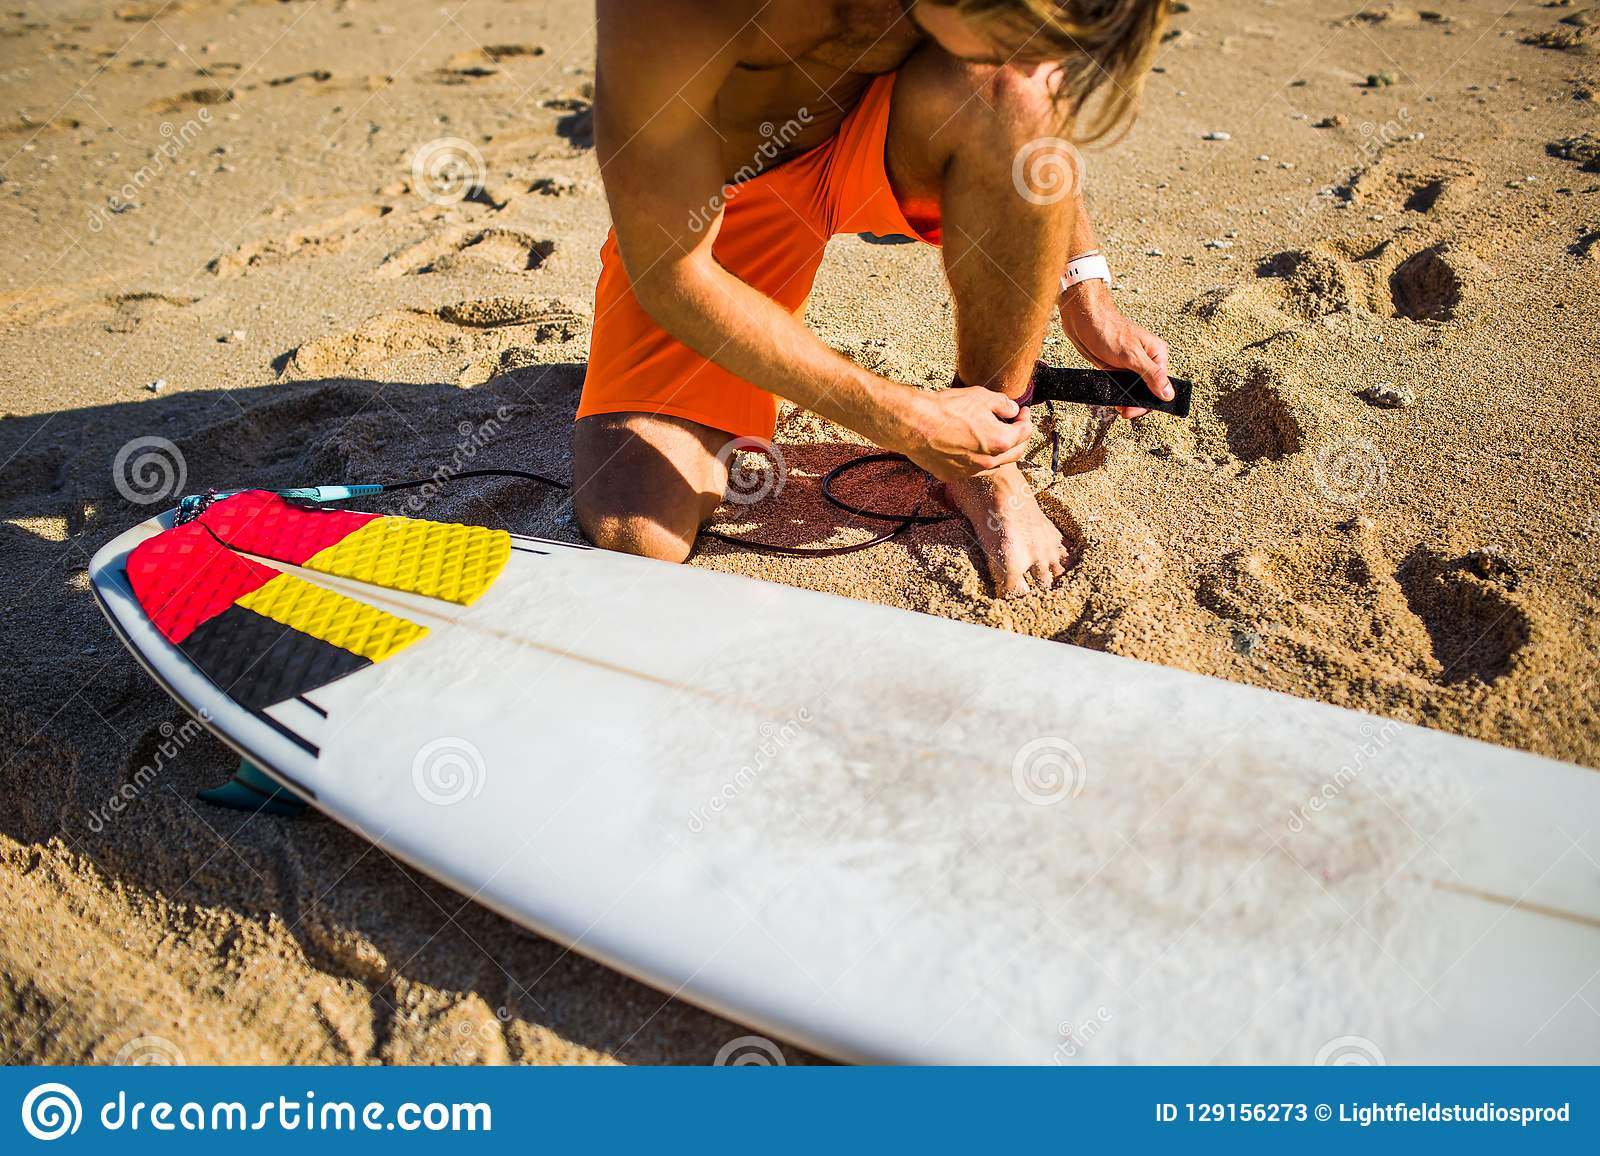 partial view of sportsman getting ready for surfing